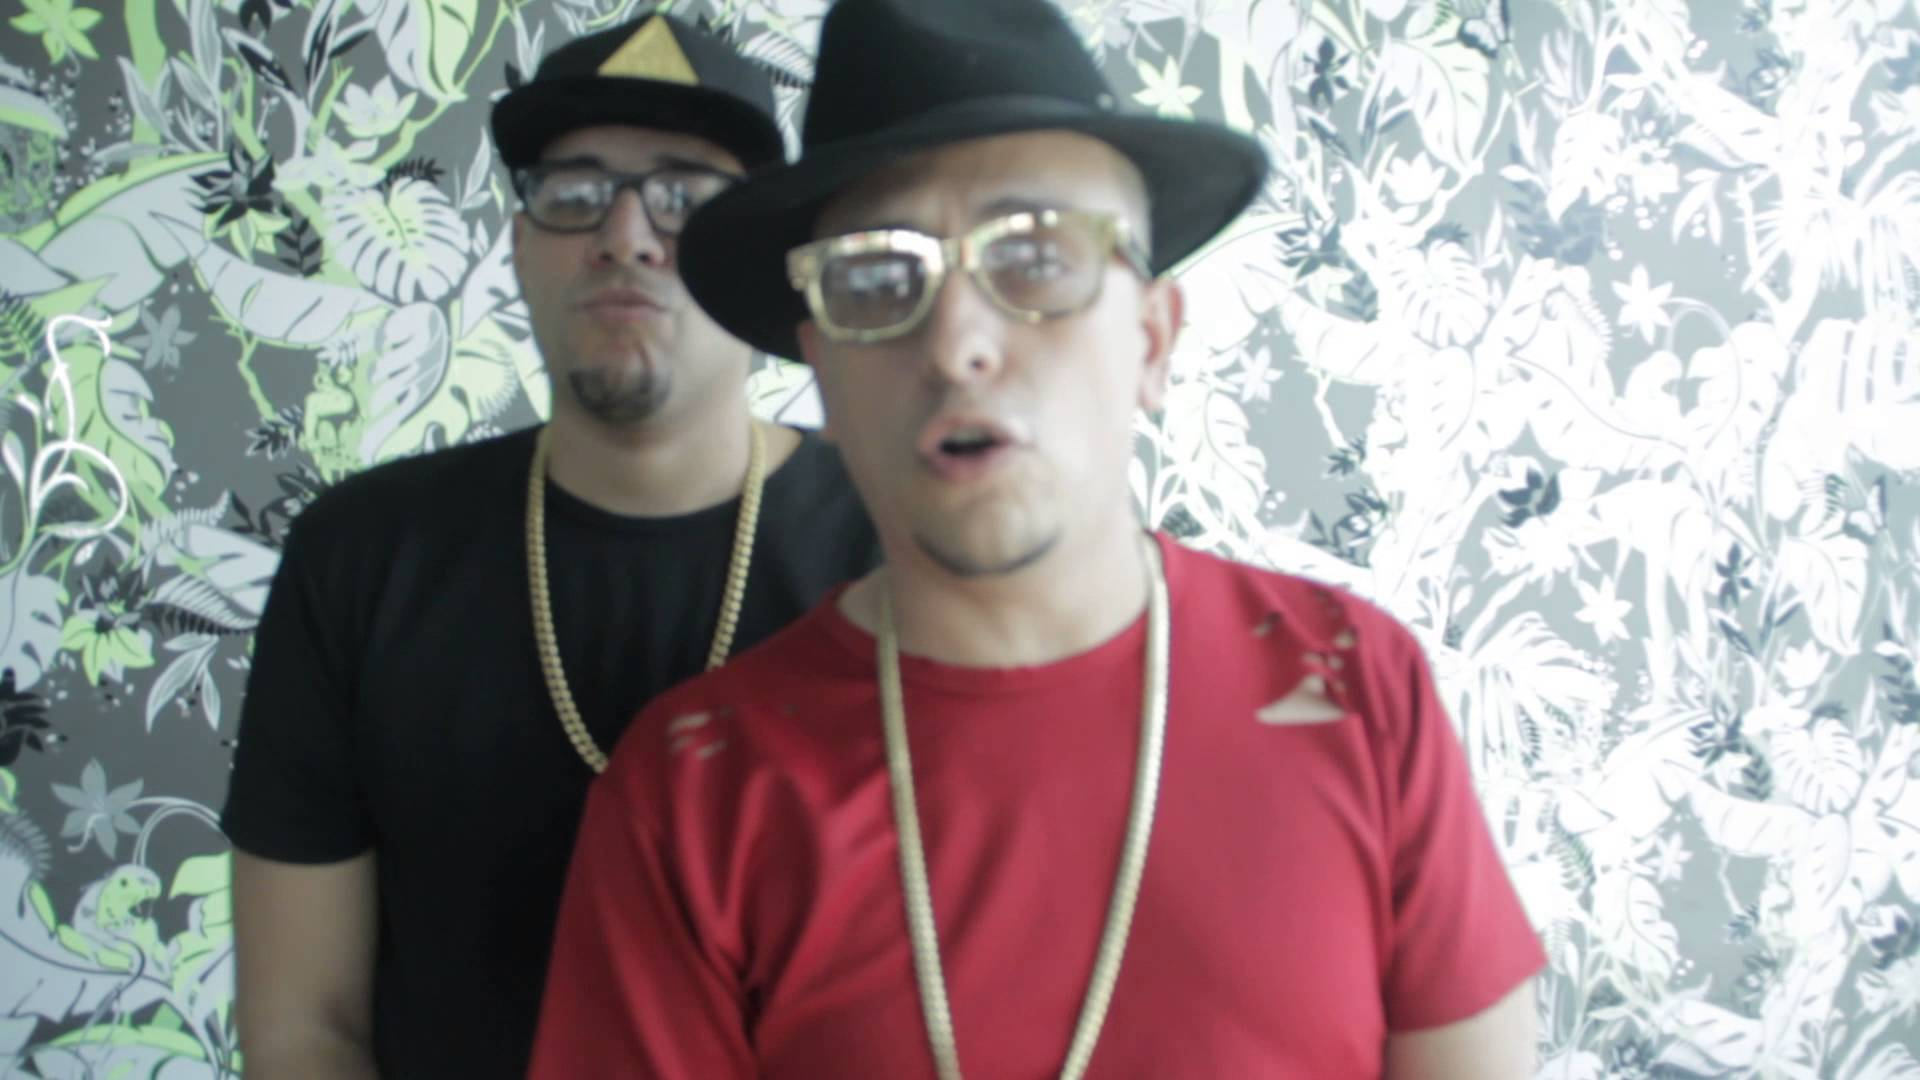 j king maximan saludando a malia - Mr Manyao Ft. Villaman - Suelta Ese Cuero (Official Video)